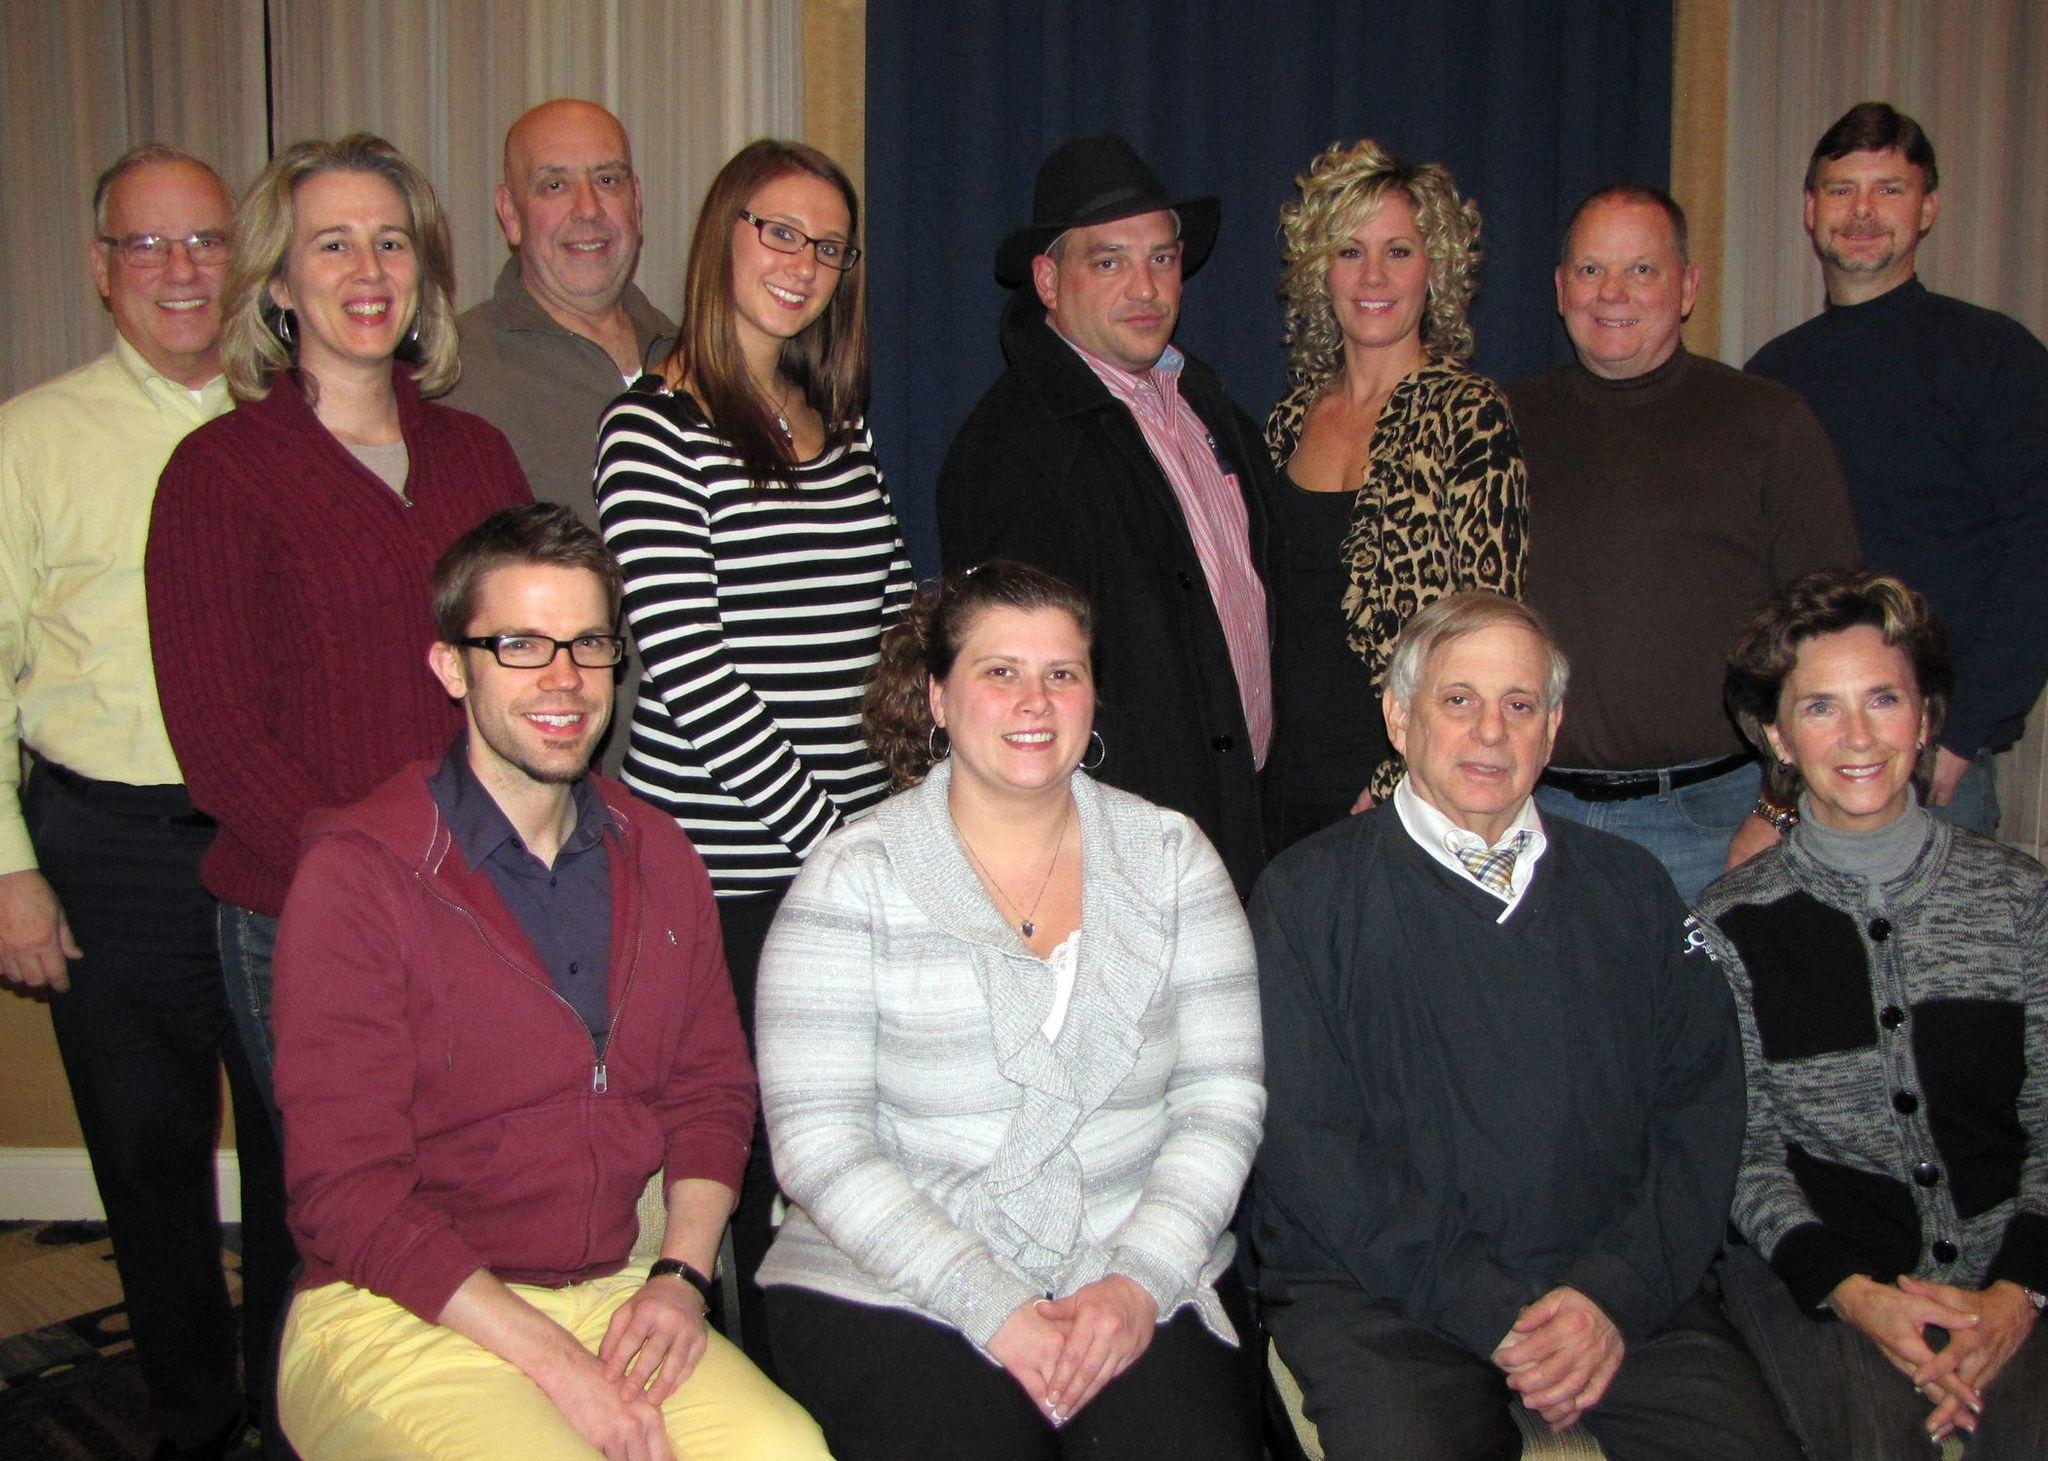 Seated, from left to right: Chad Glabach, Jackie Agruso, John Tinnirella and Gina Filossie. Standing, from left to right: Mike Helechu, Jo Ann Walk, Gary Cote, Carissa Pape, Gary Carra, Michelle Hogan, Rich Tkacz and Dan Leduc. Missing from photo Angela Taylor and Tom Casey.